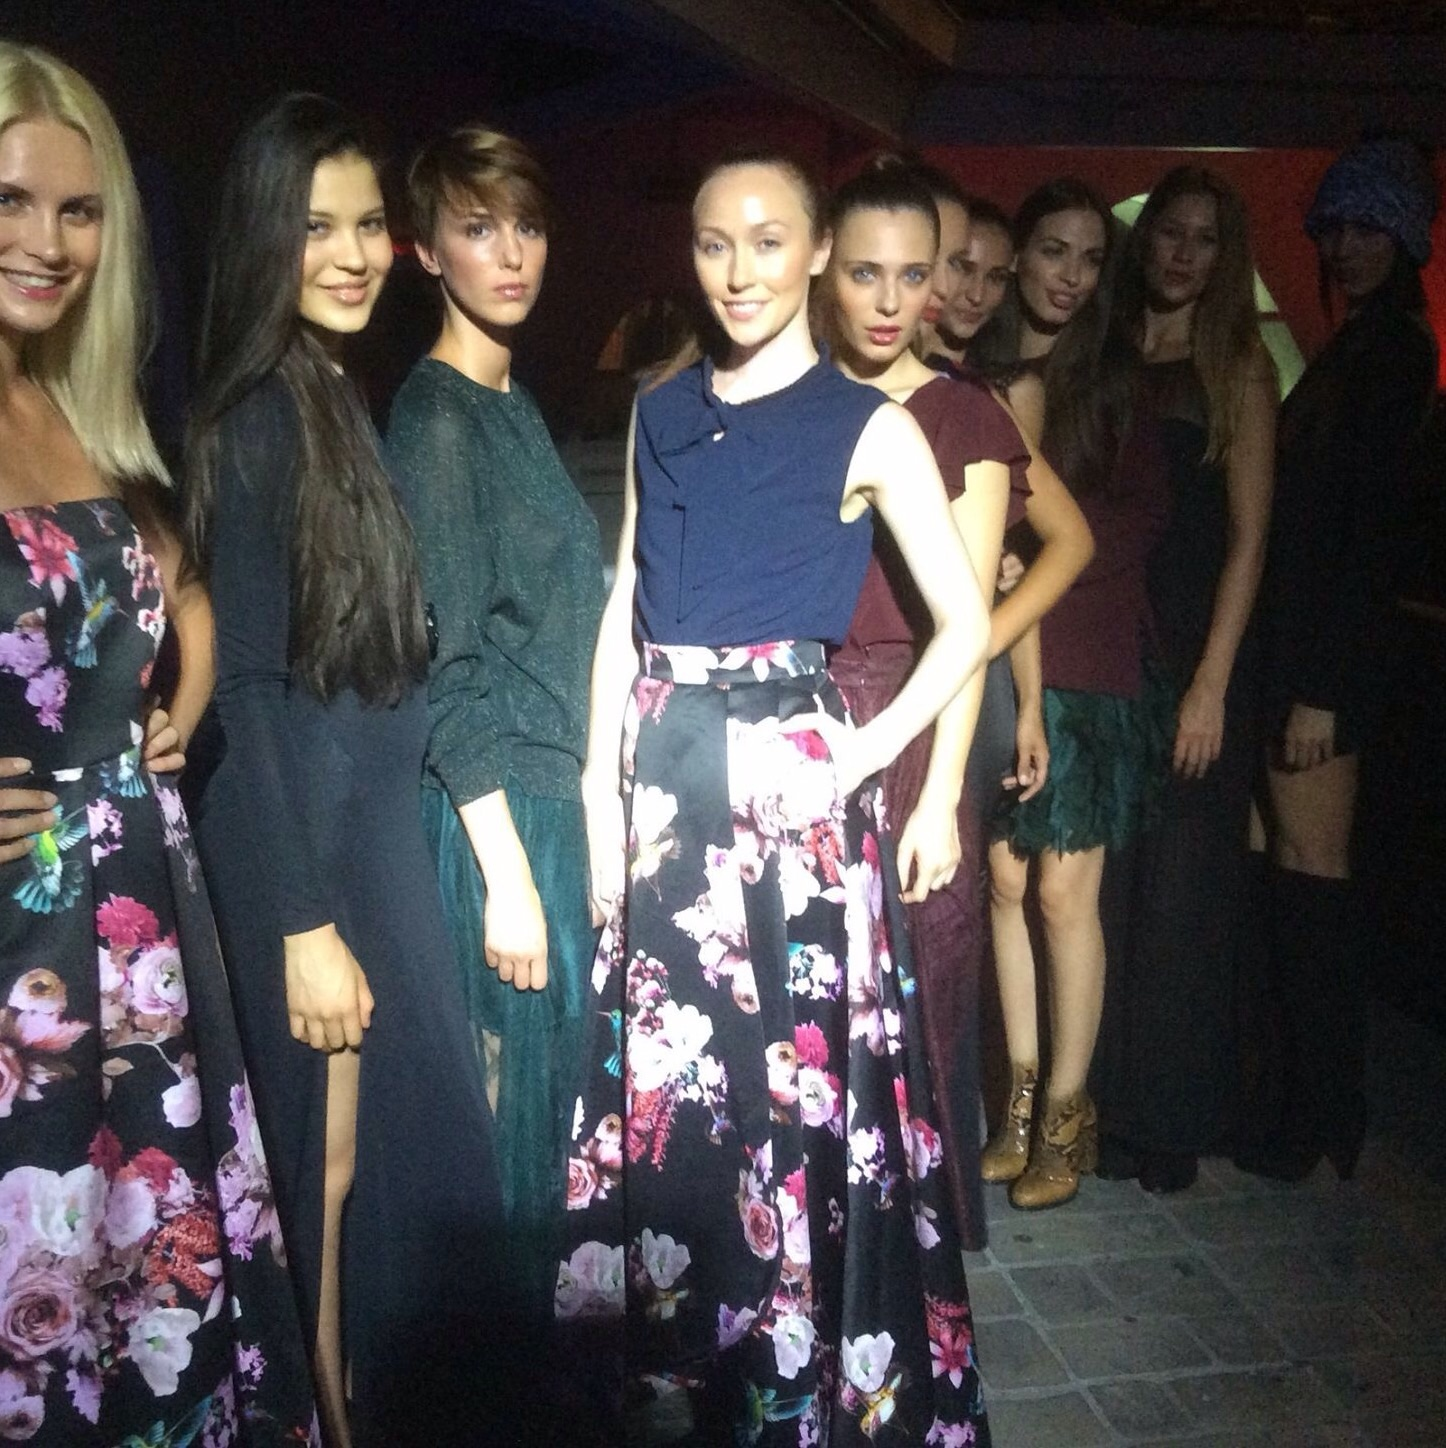 Backstage line up at the Pinko show.